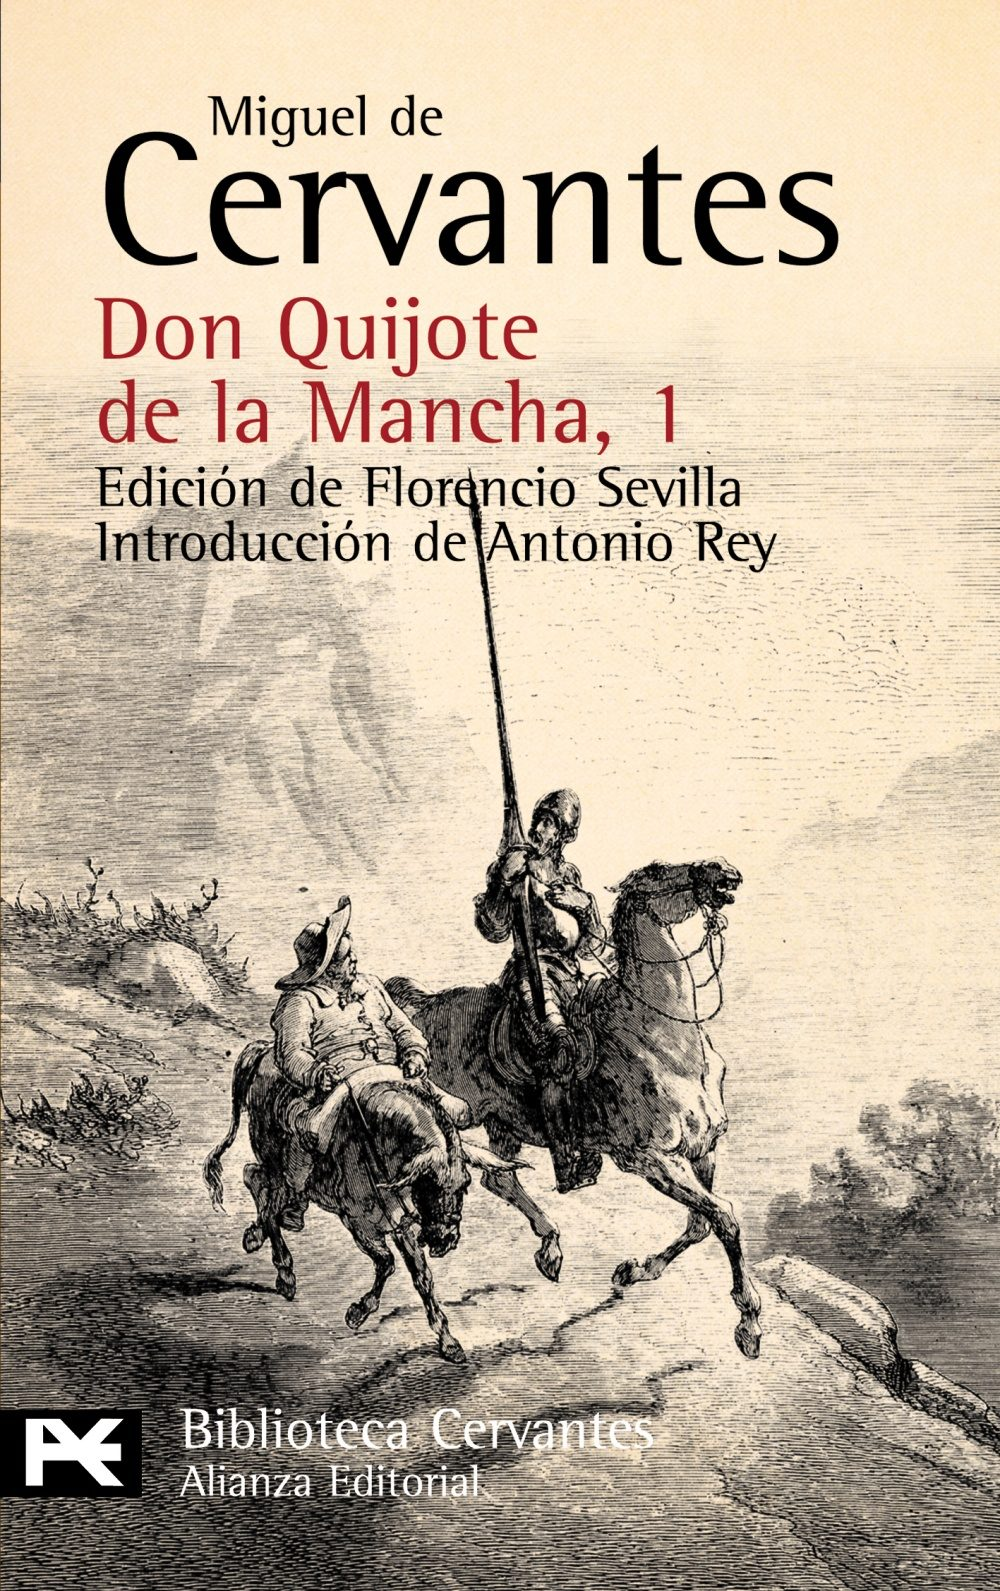 don quijote Don qui o e (kē-hō′tē, kwĭk′sət) n an impractical idealist bent on righting incorrigible wrongs [after don quixote, , hero of a satirical chivalric romance by.